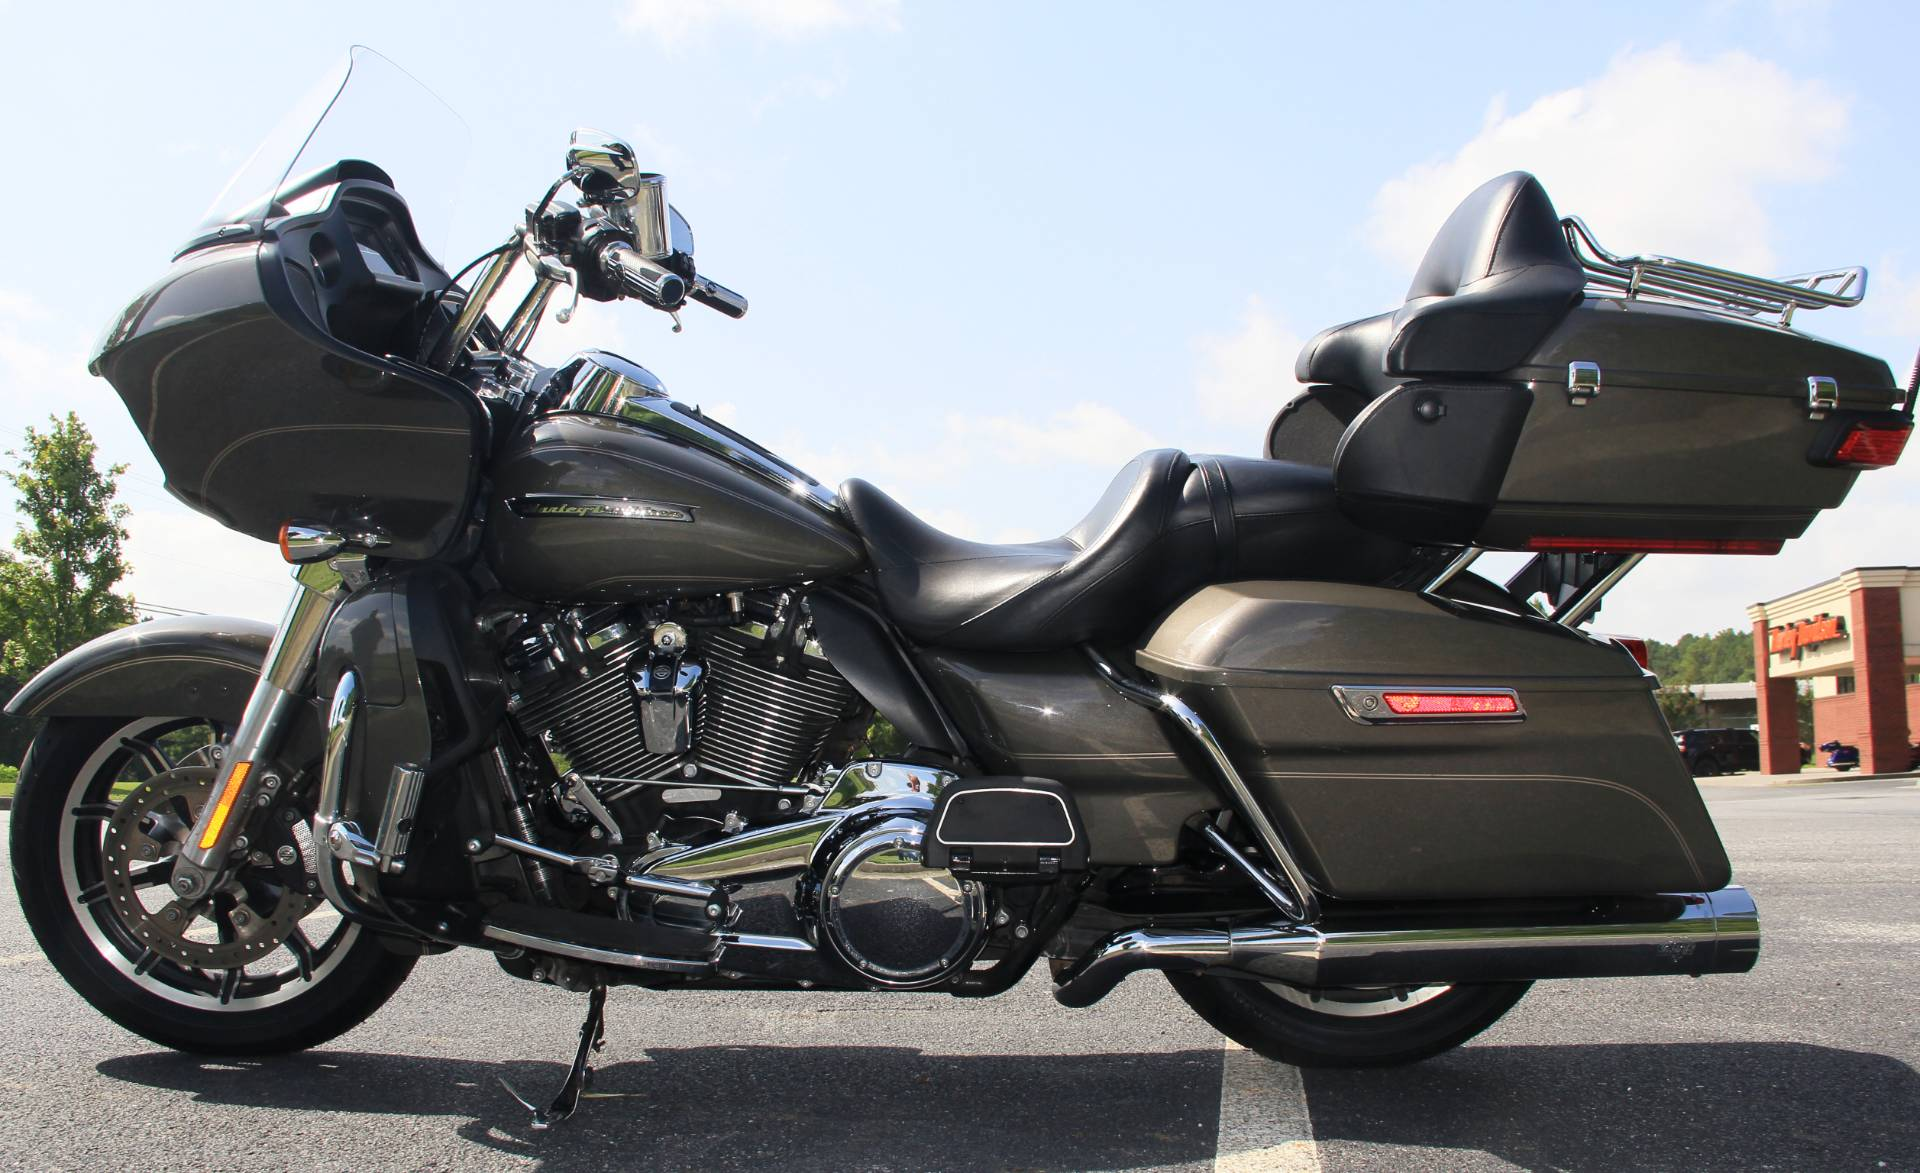 2018 Harley-Davidson Road Glide Ultra in Cartersville, Georgia - Photo 5